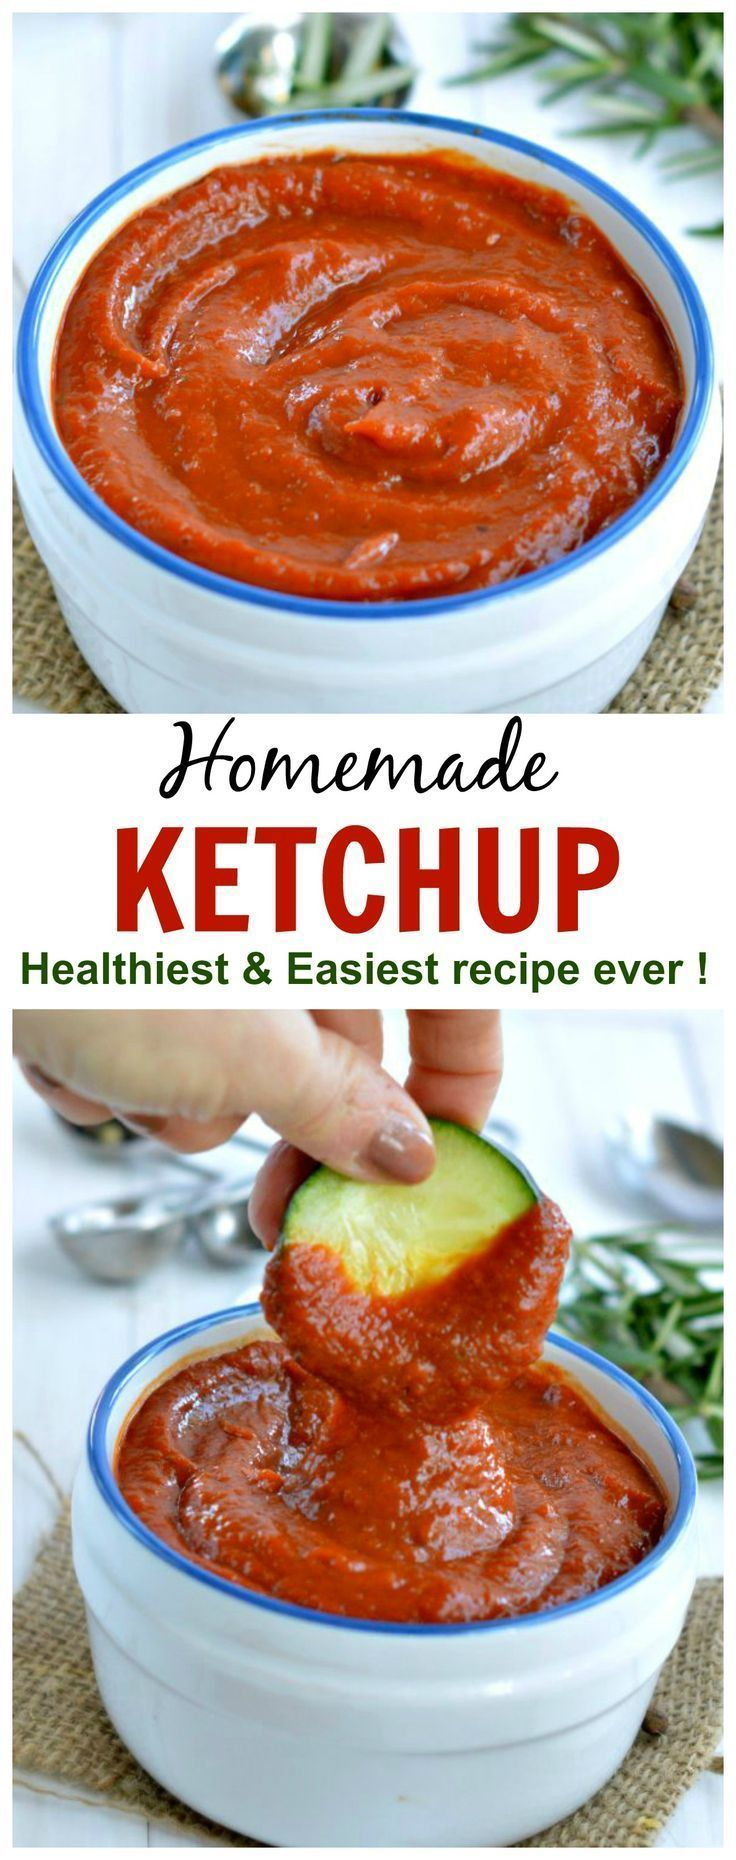 Homemade ketchup ! Sugar free only veggies! Easy for moms to makes and taste like heinz ketchup, really!